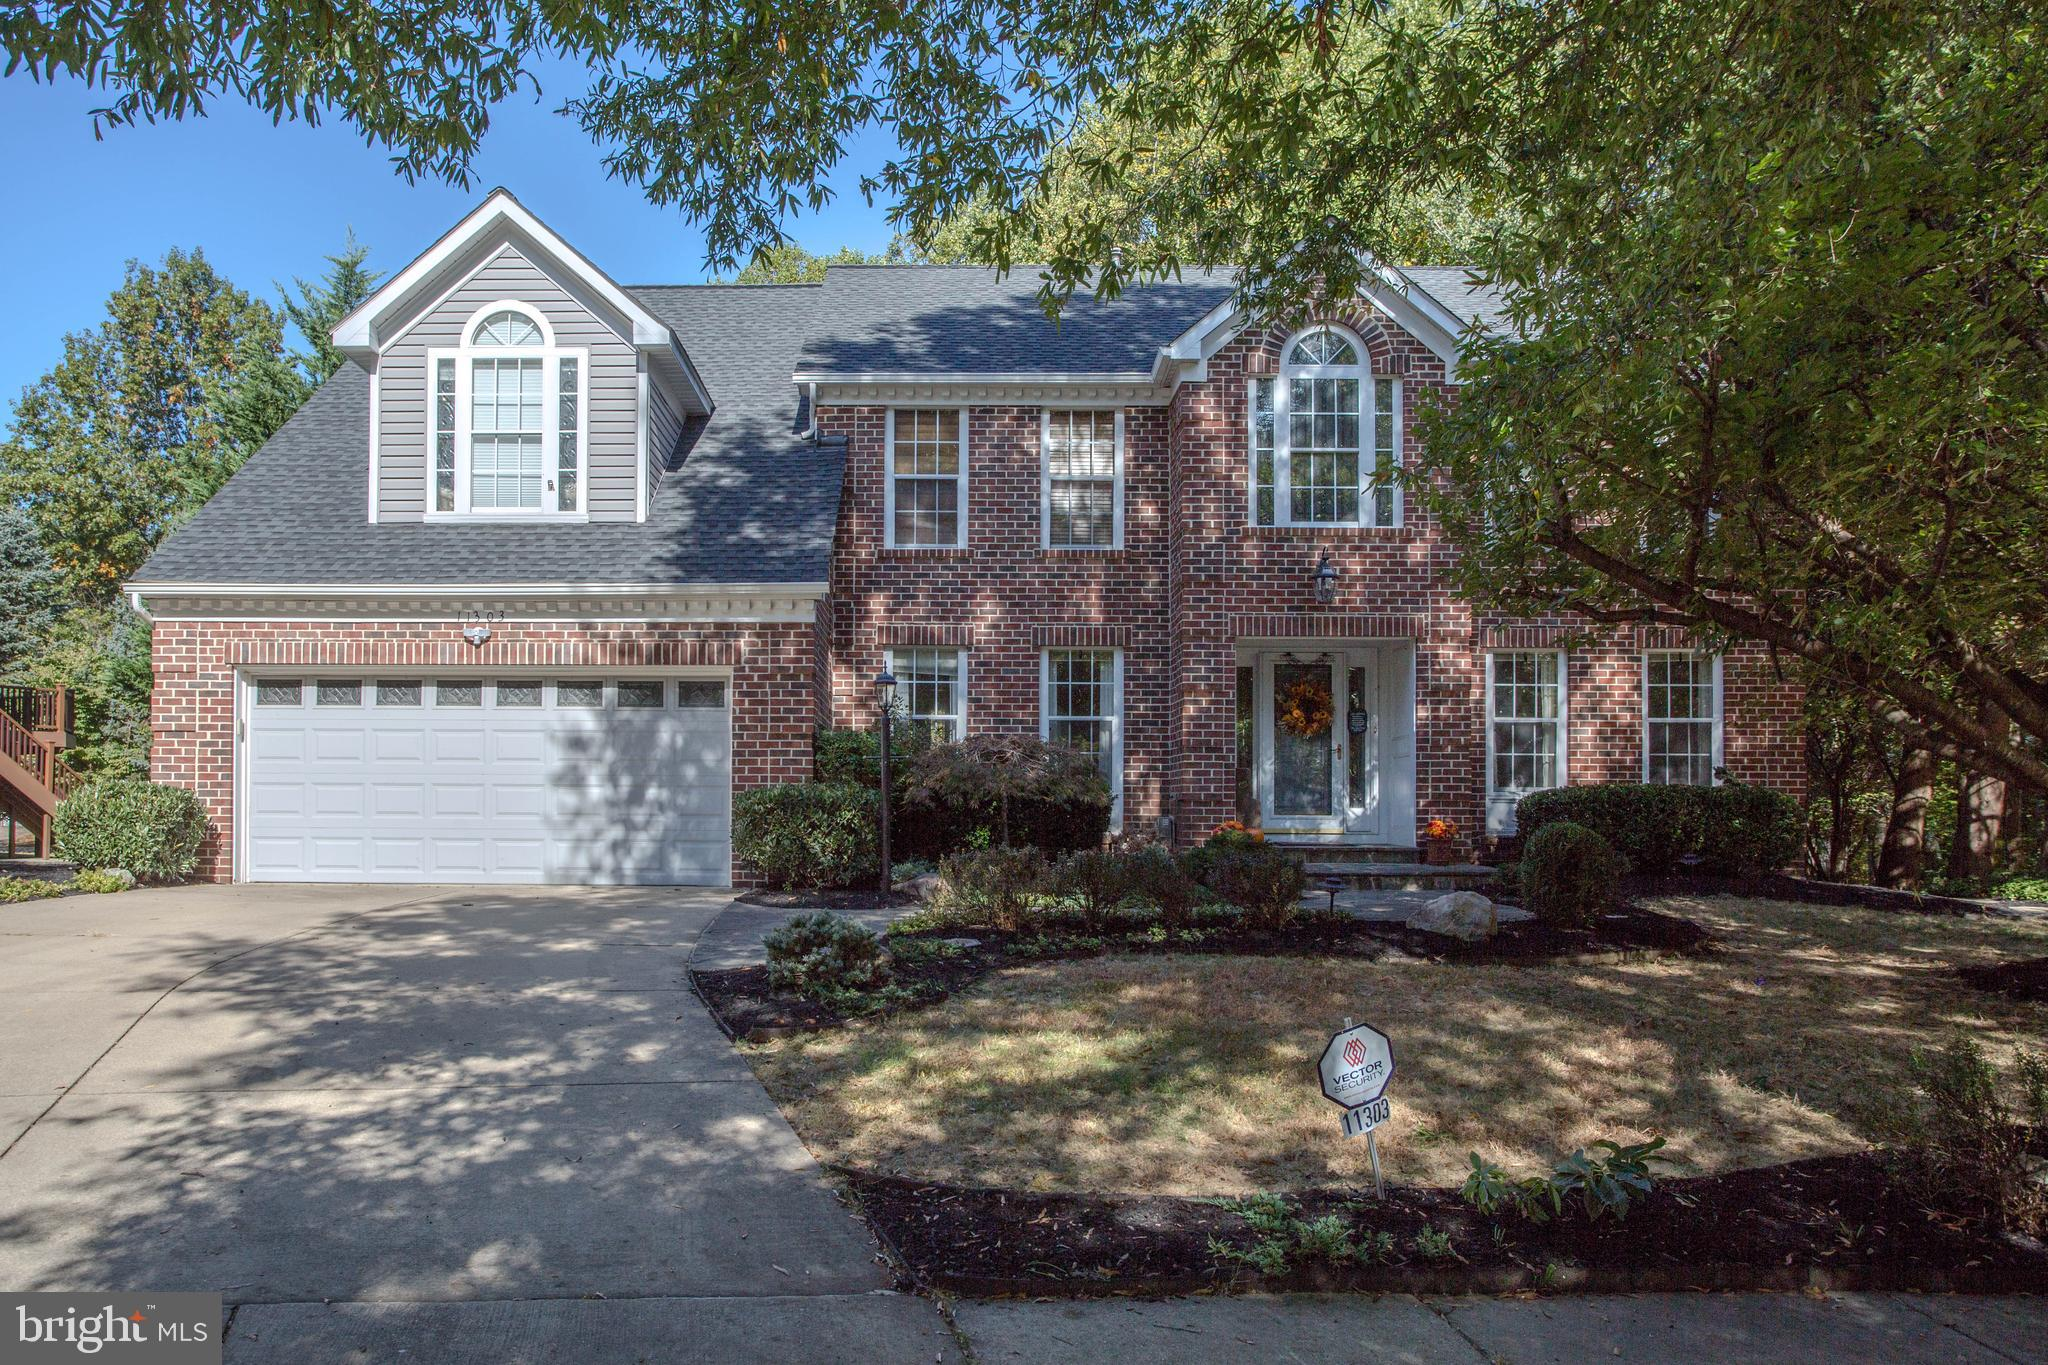 11303 WILLOWDALE DRIVE, GERMANTOWN, MD 20876